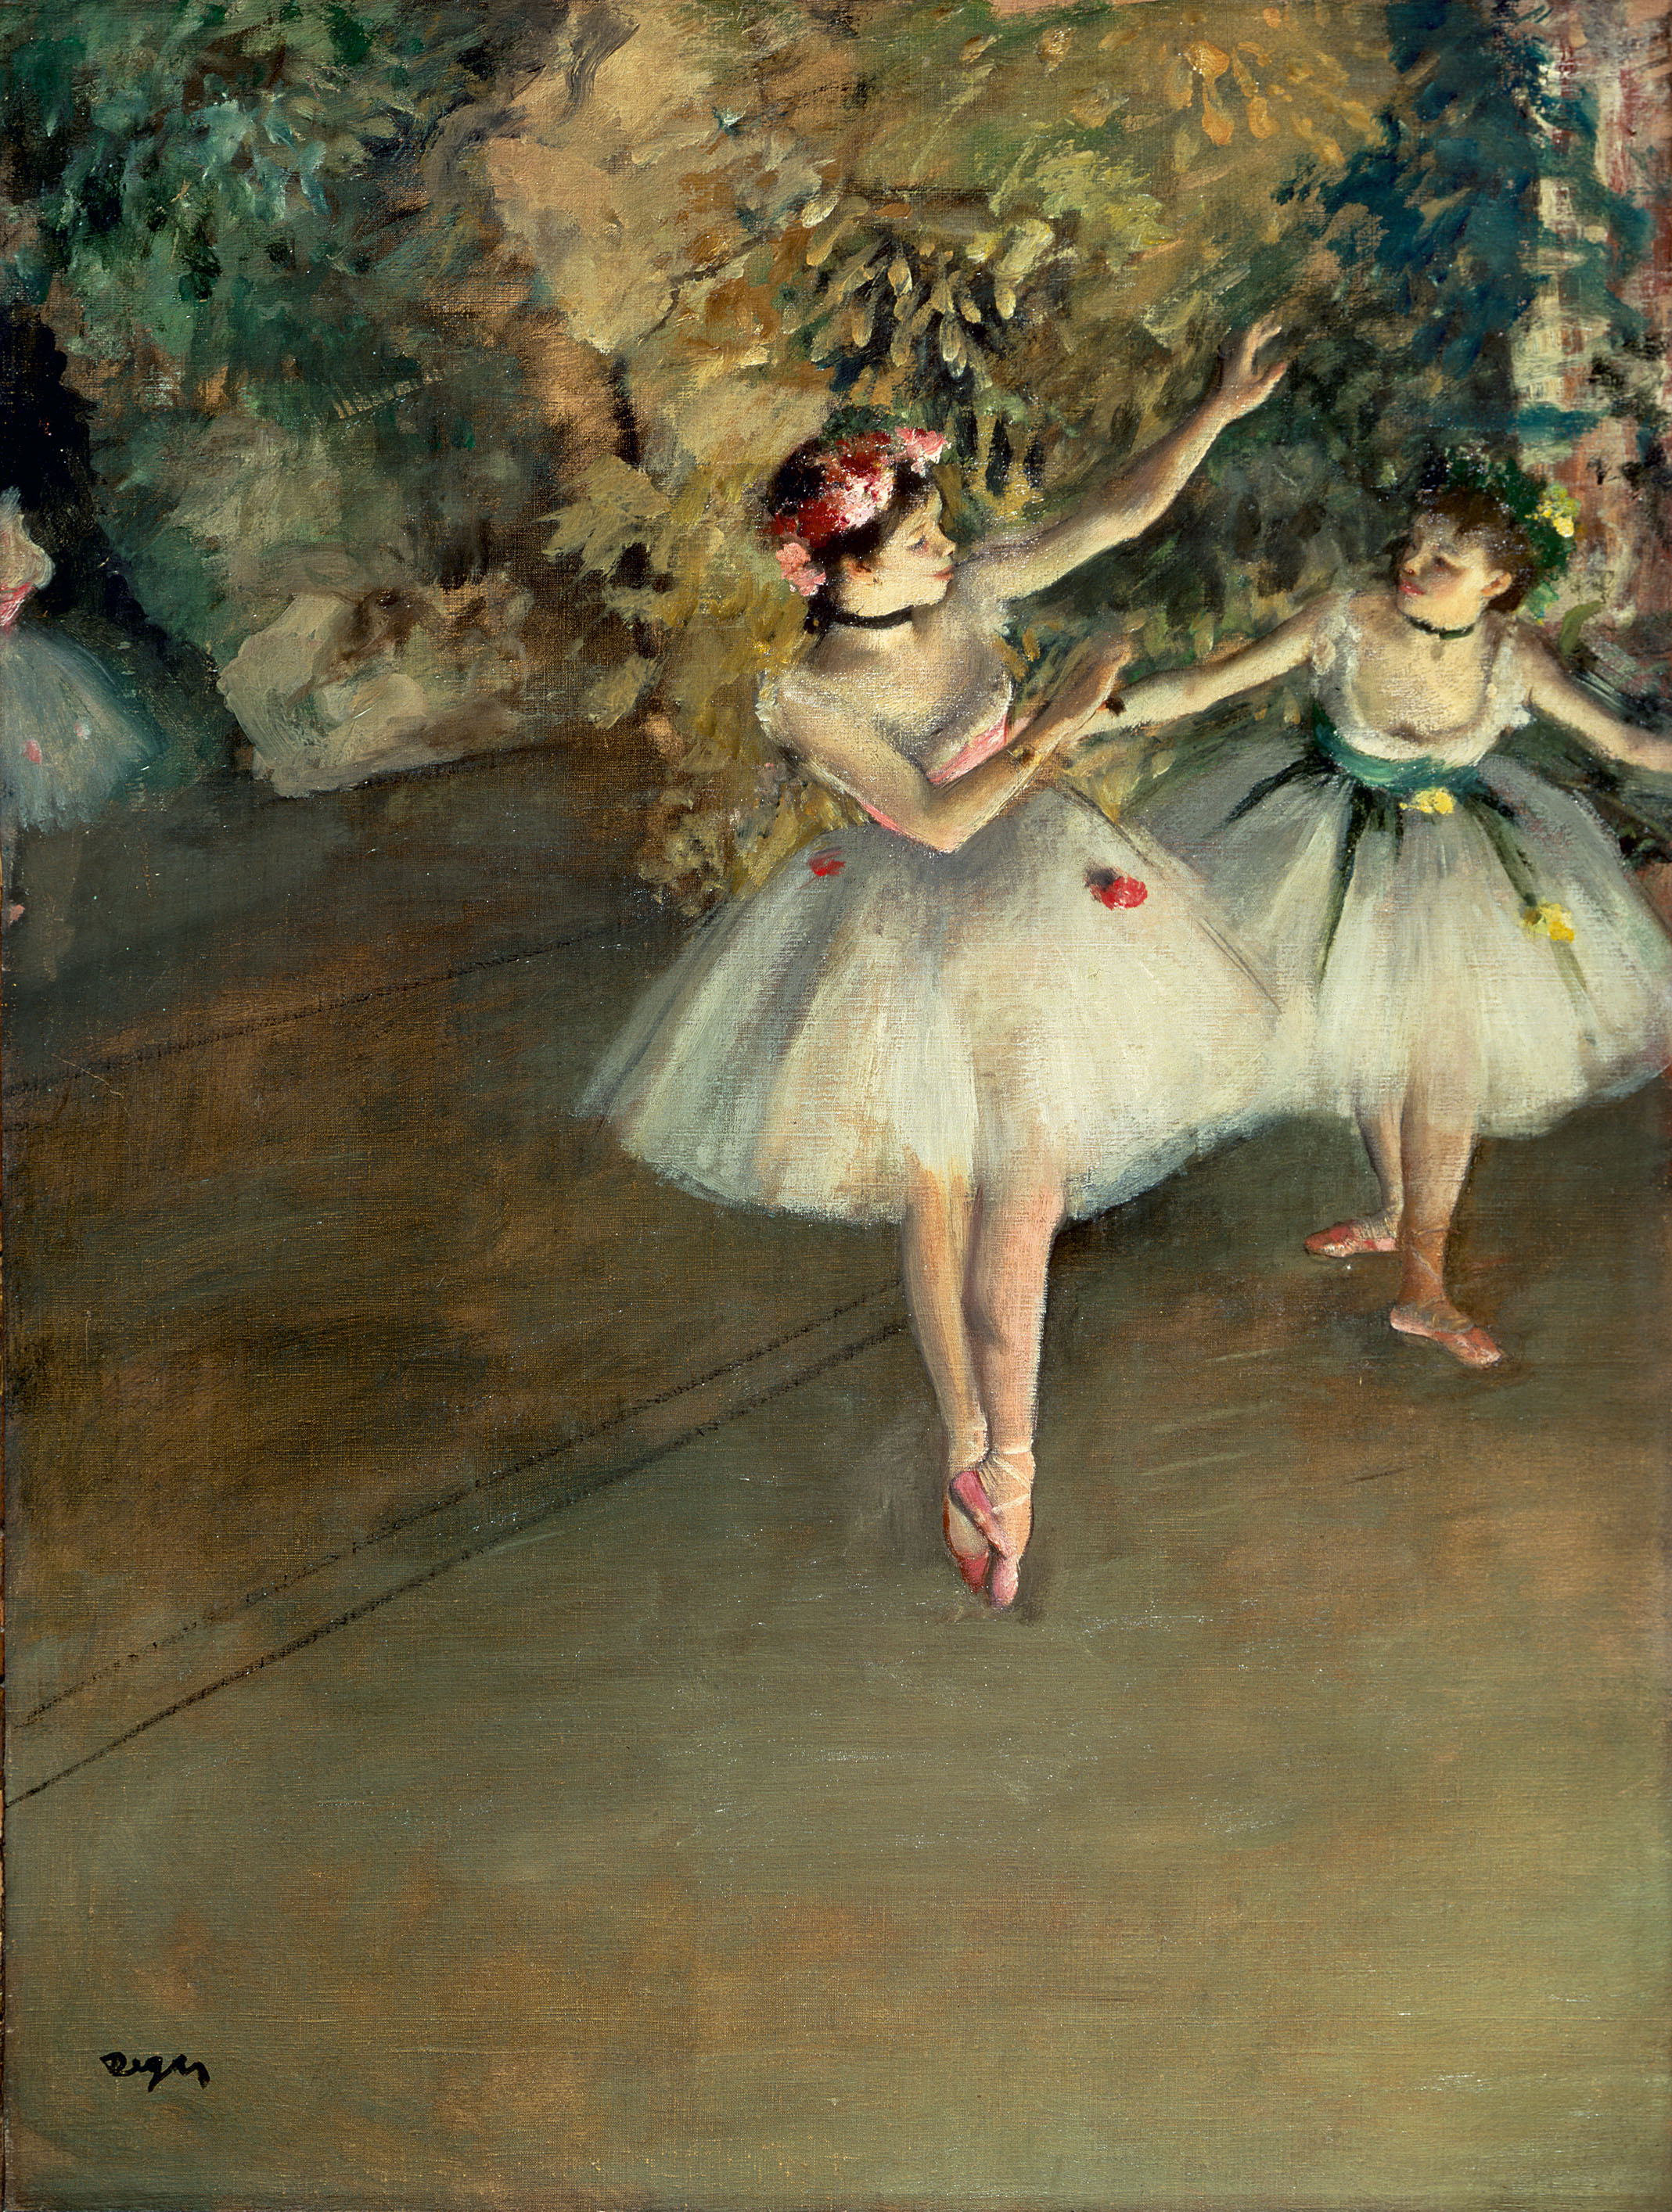 a biography of edgar de gas a french painter French painter and sculptor edgar degas (1834-1917) is considered to be one  of the major representatives of impressionism, due to his innovating composition .